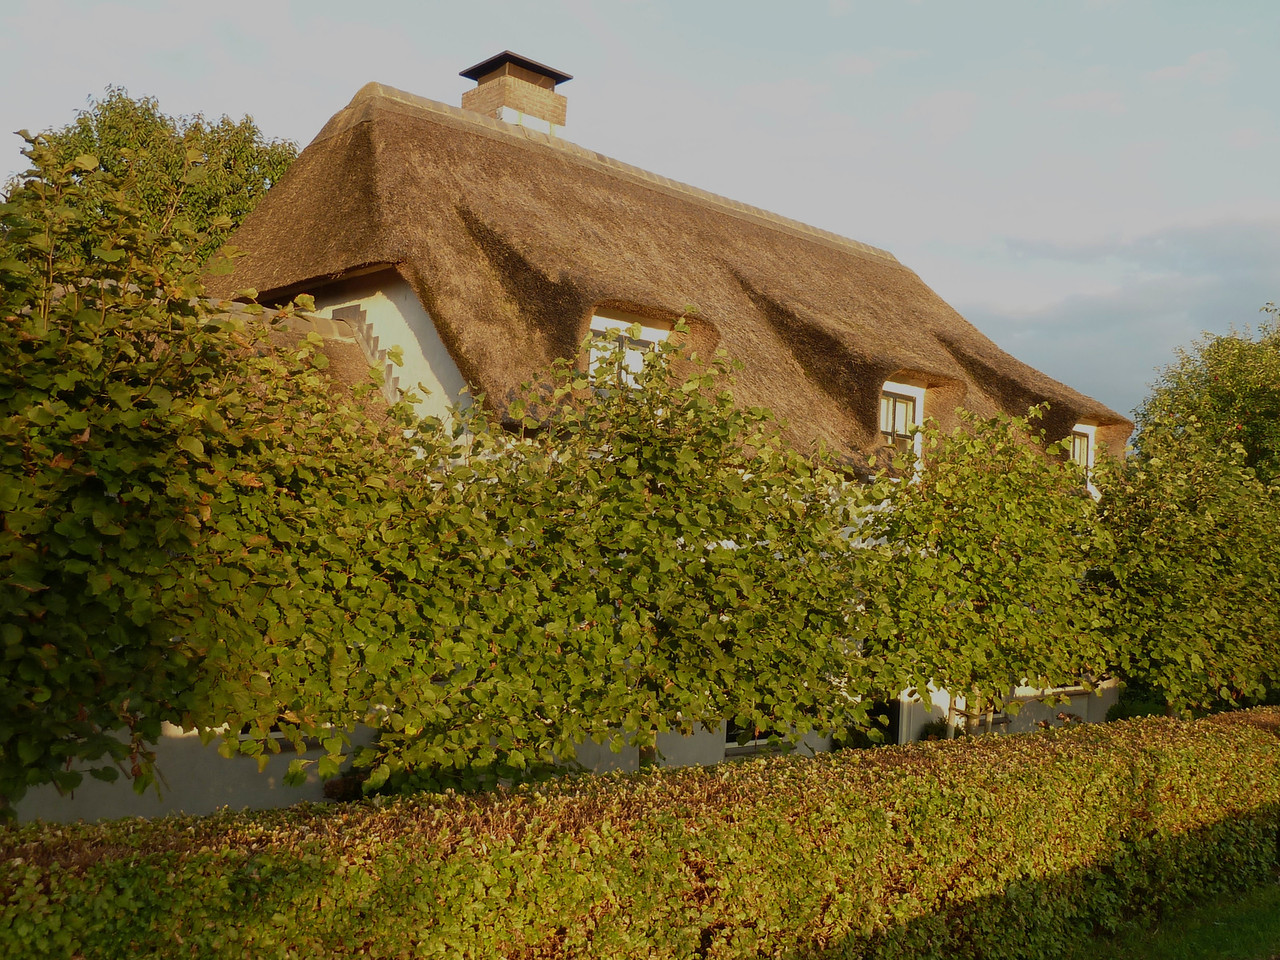 Old-fashioned straw roofs of Holland!